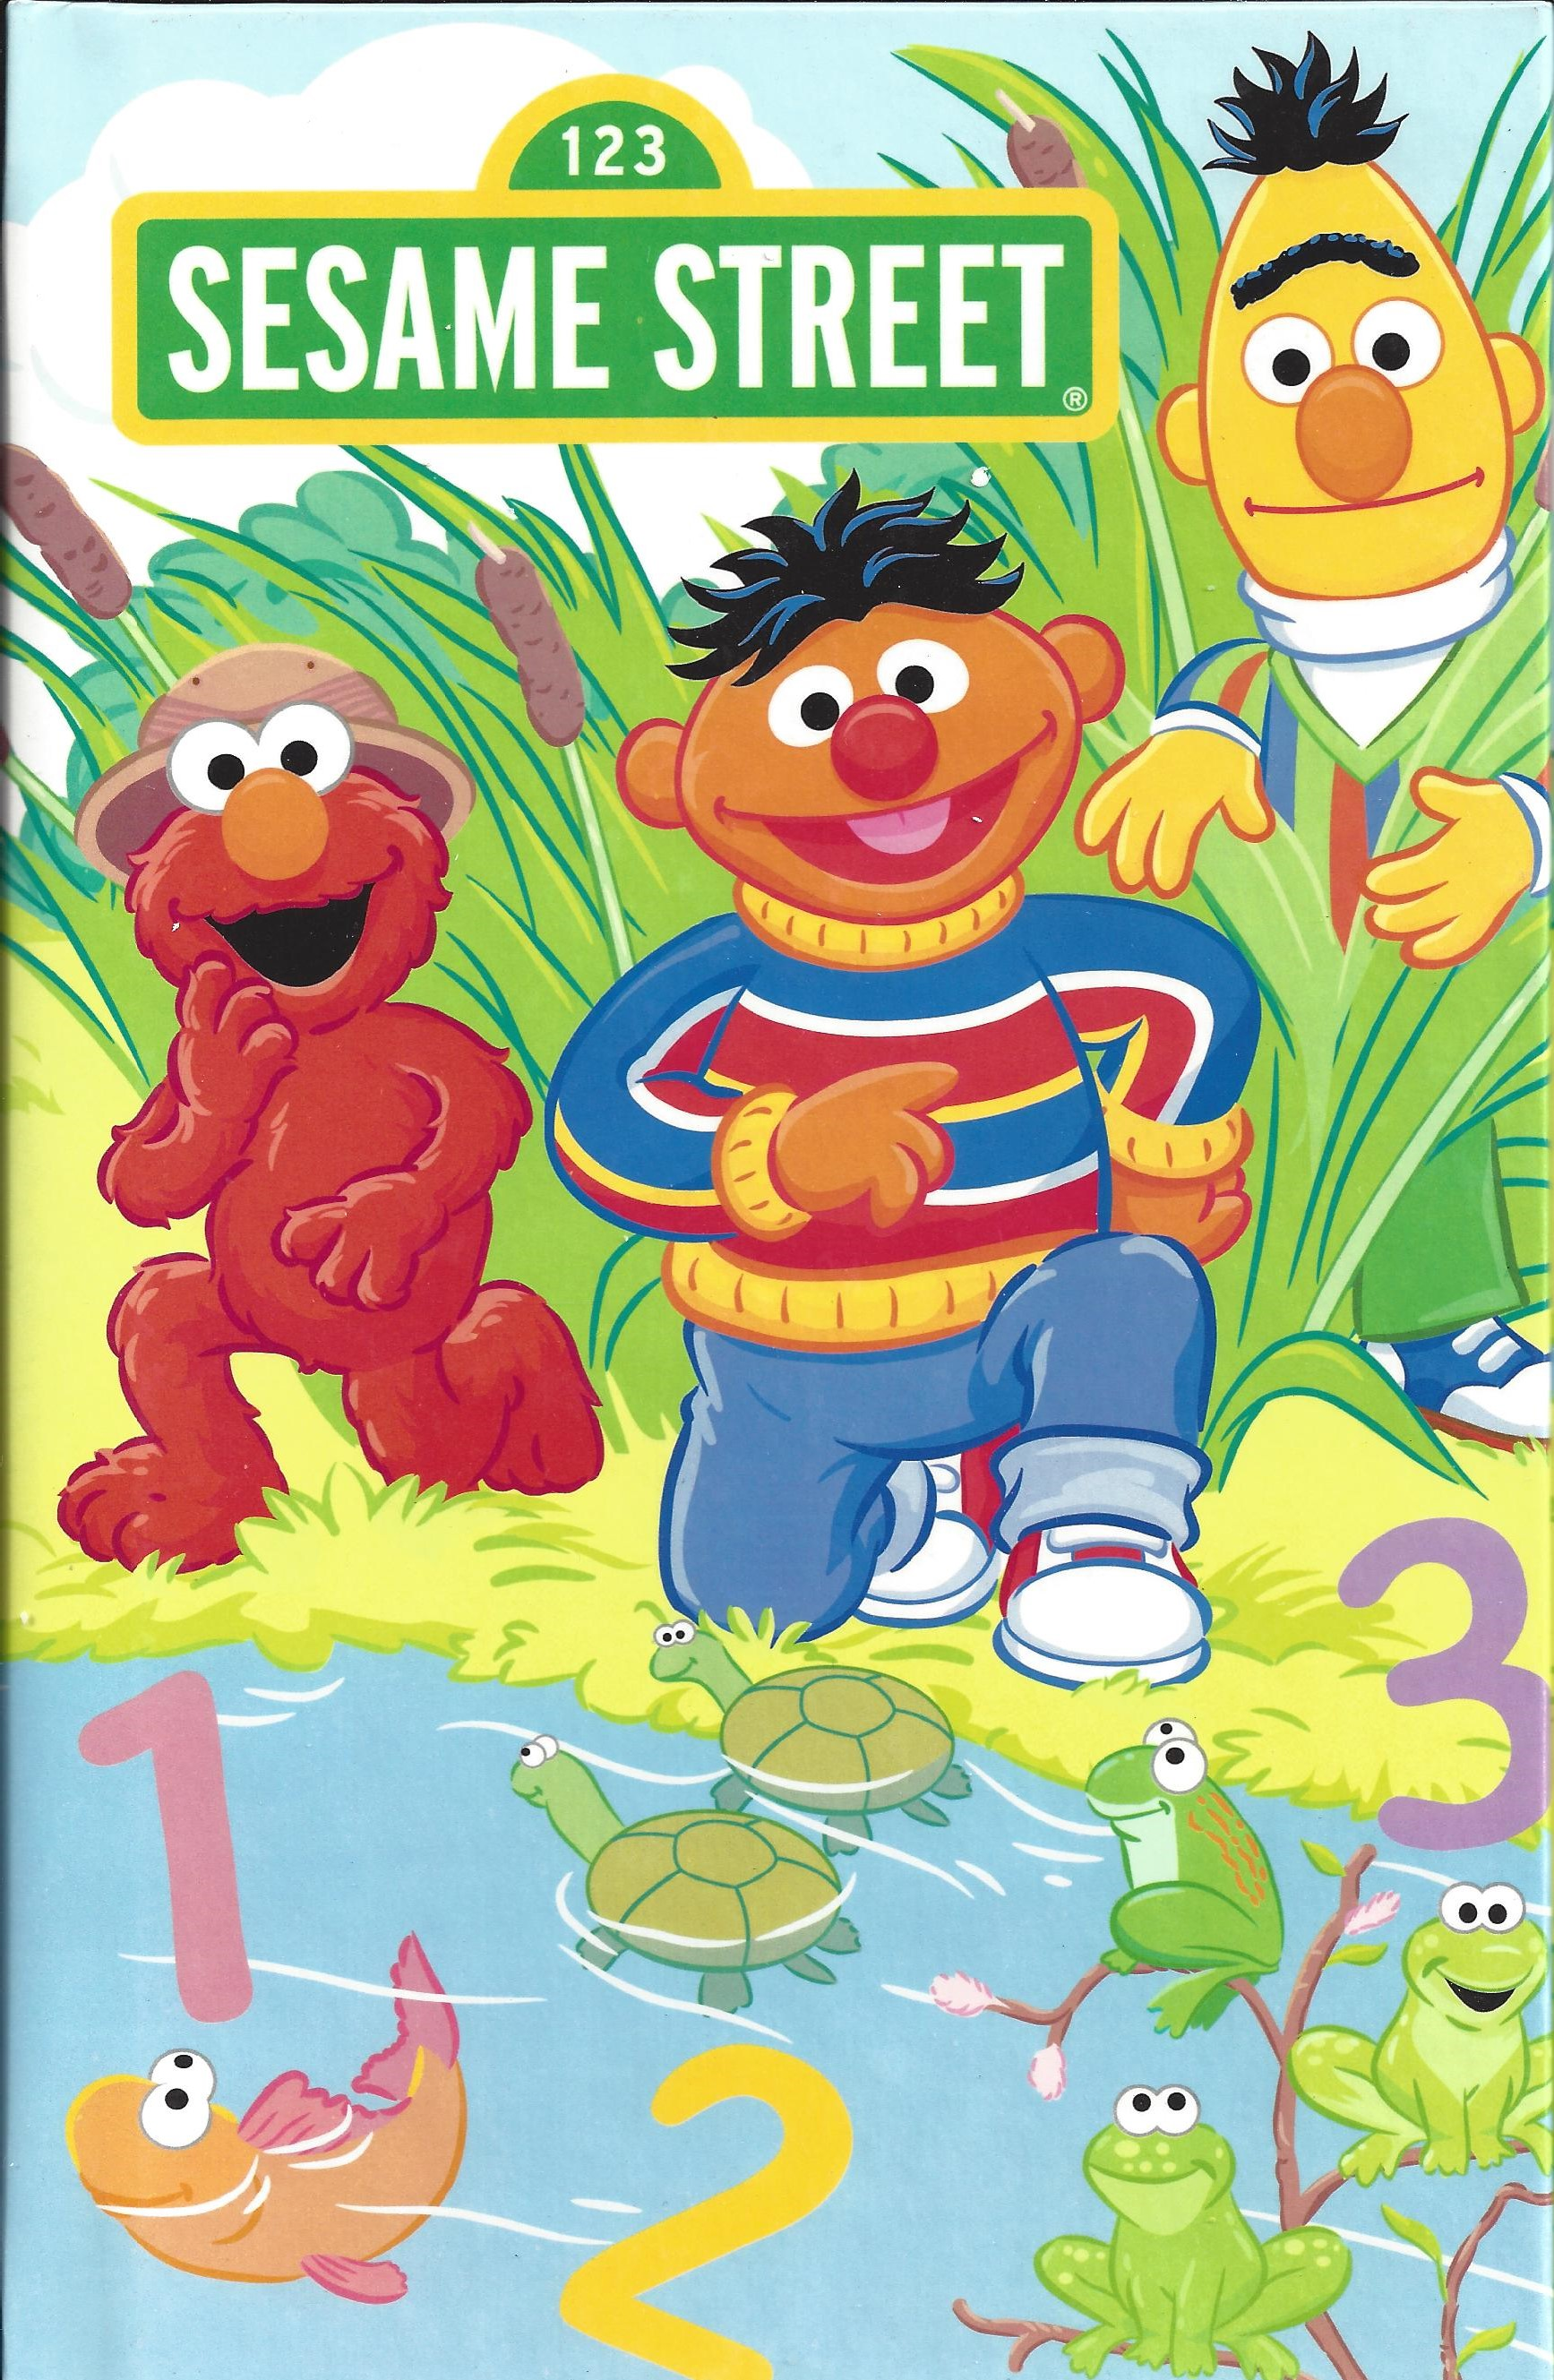 Sesame Street:  123 Let's Count